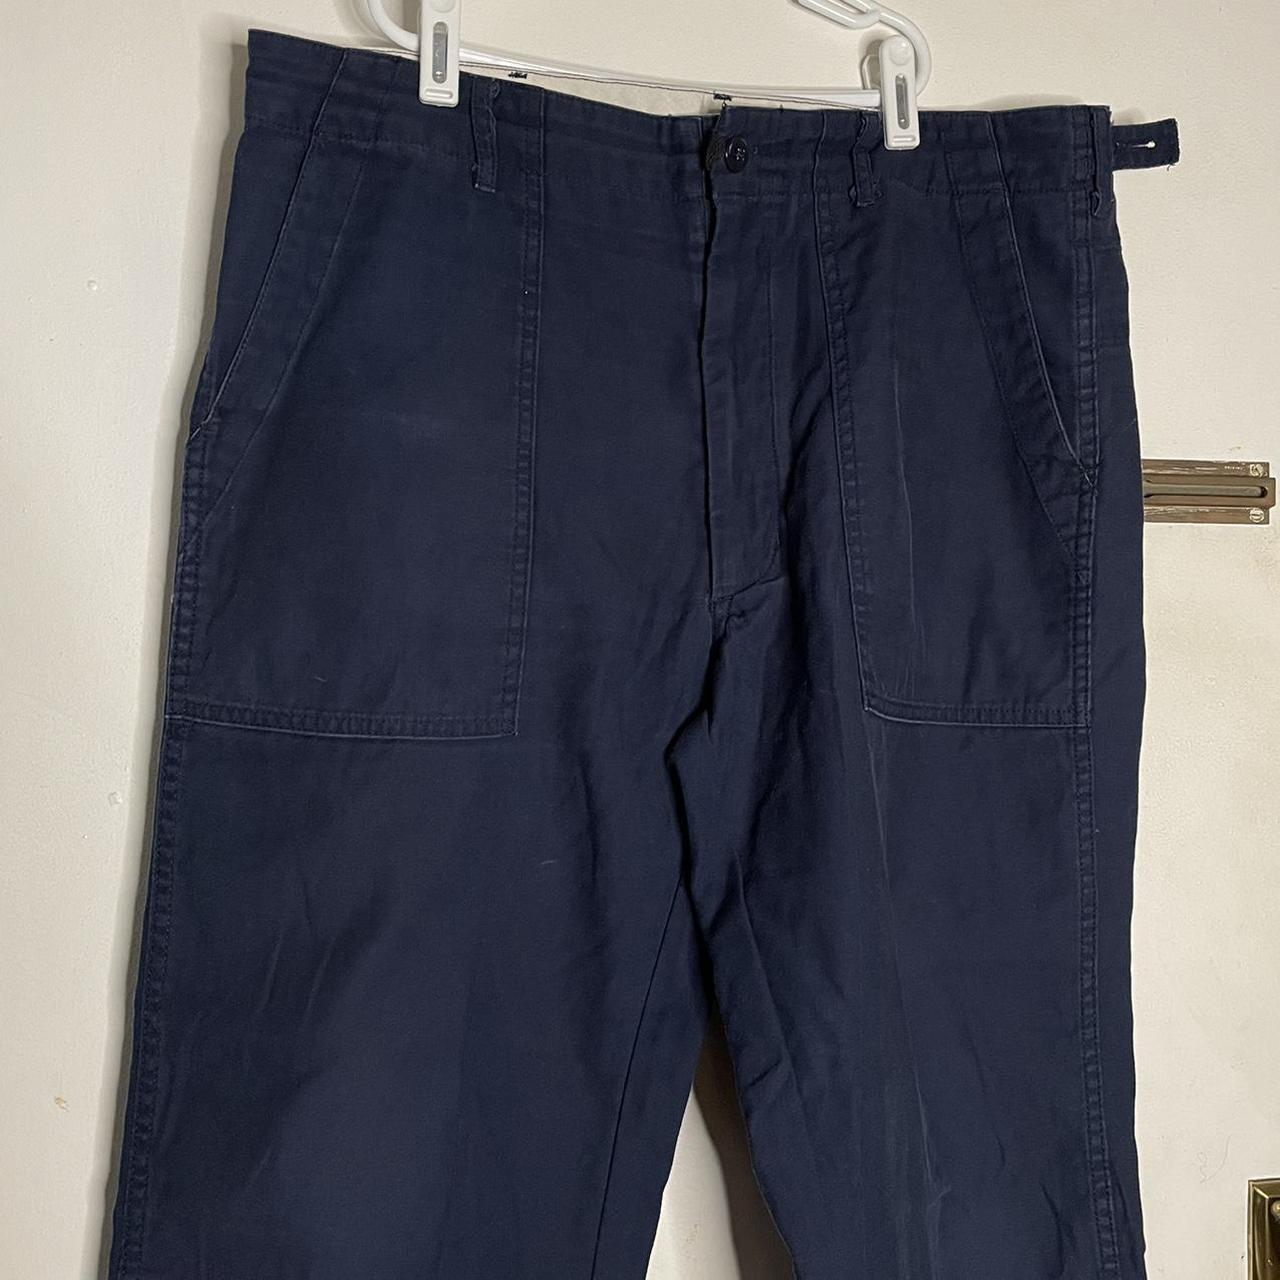 Product Image 1 - Engineered Garments navy cotton fatigue